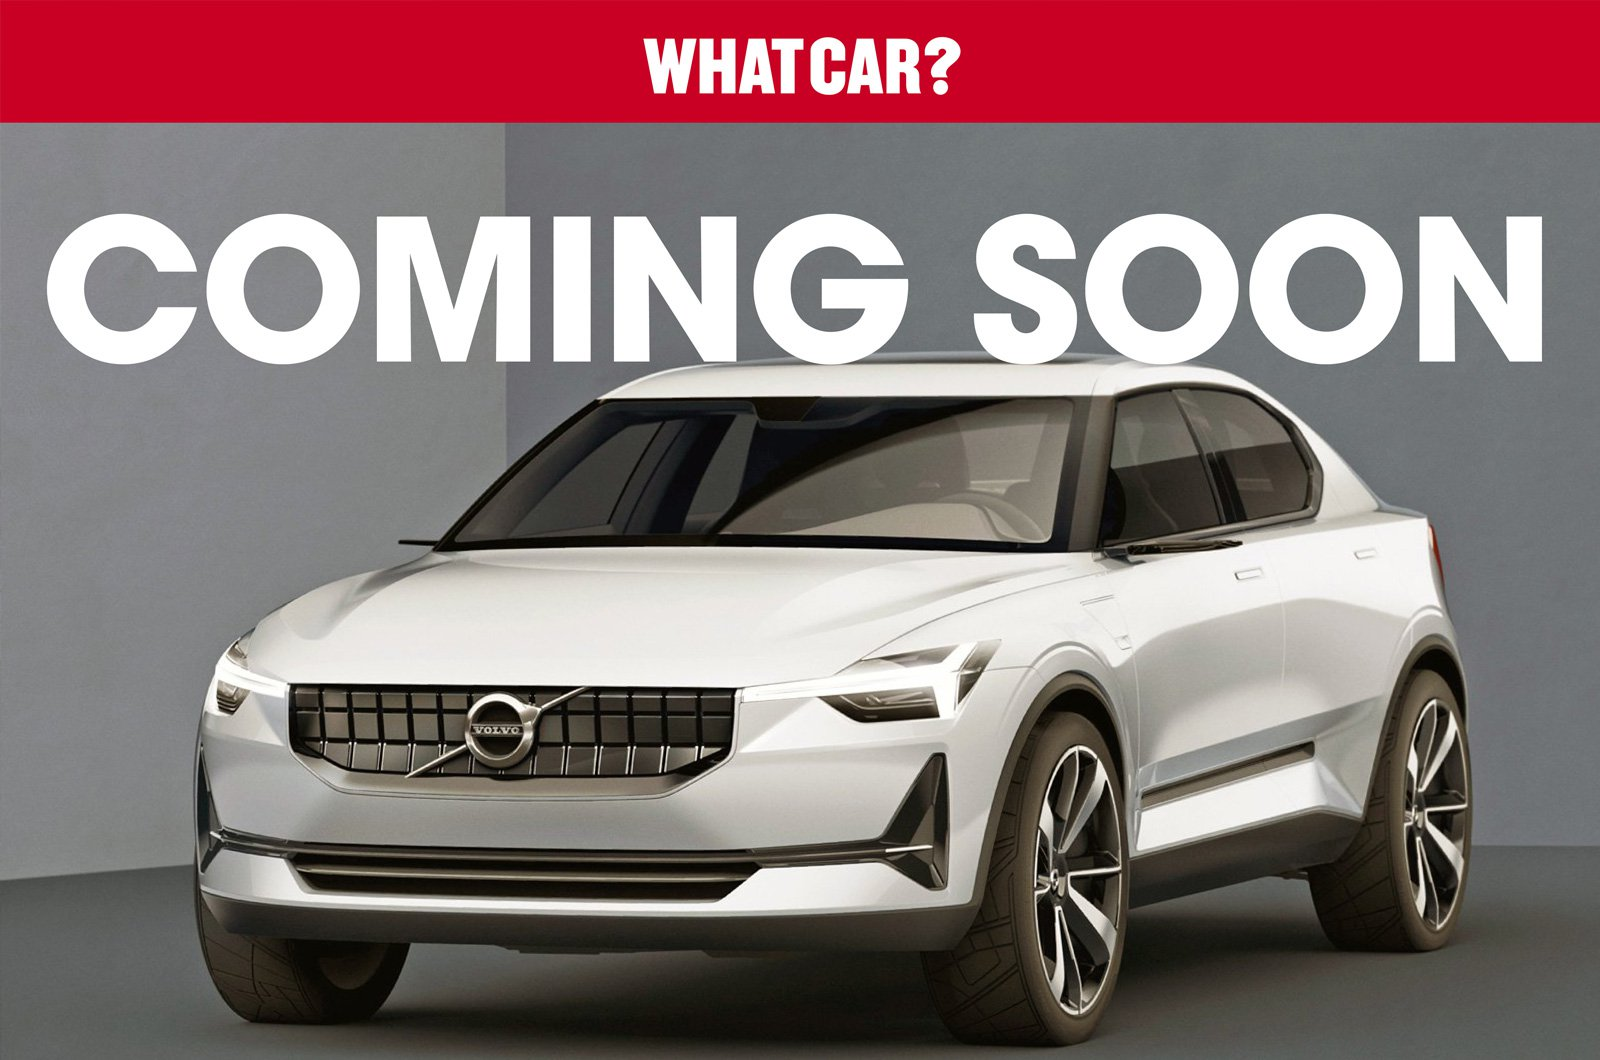 Volvo electric SUV coming soon